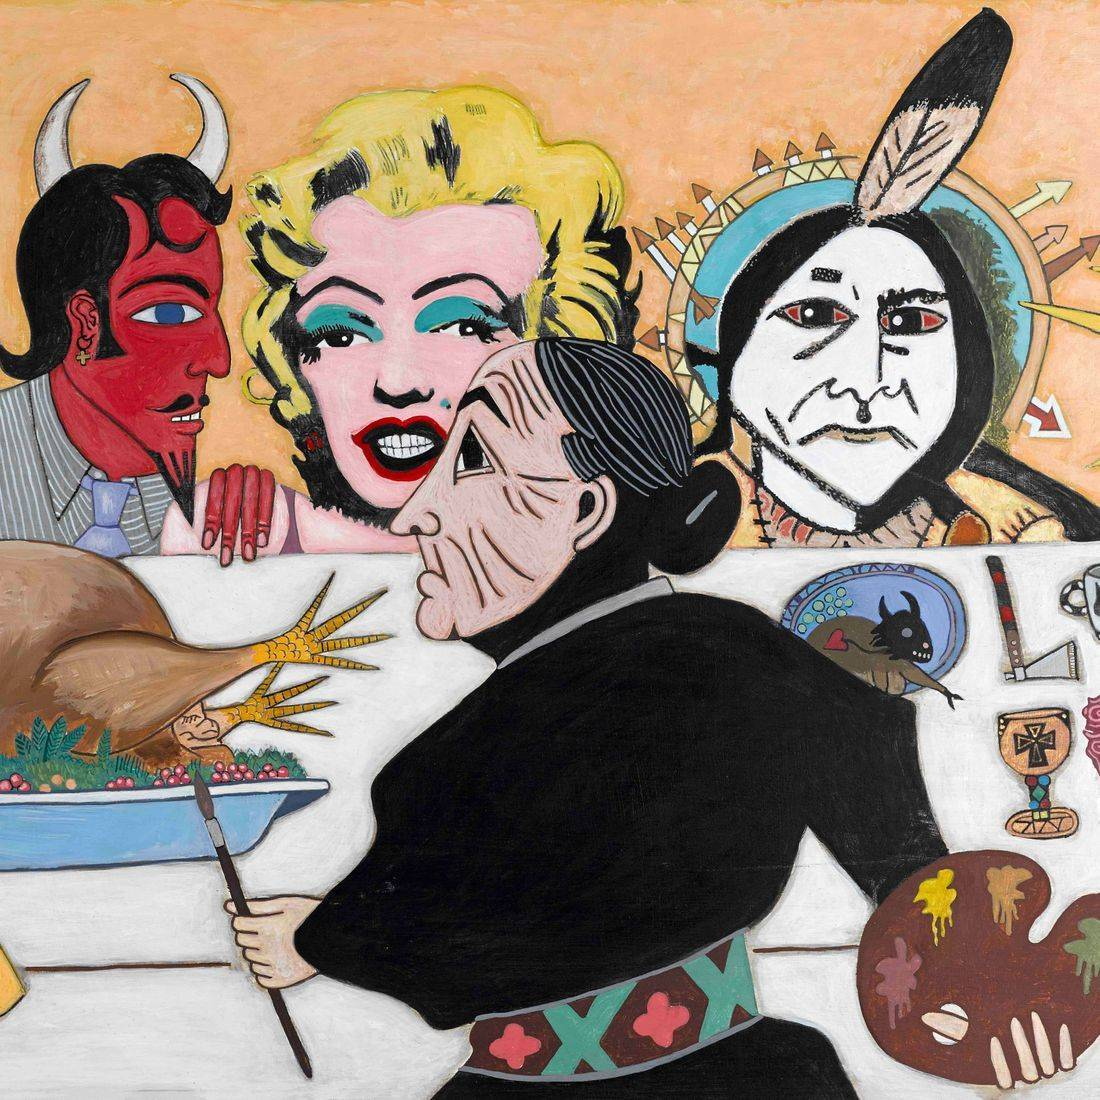 Thanksgiving, Picasso's Dog, John Lennon, Beatles, Apple Core Records, Invisible Album, Devil, Marilyn Monroe, Warhol's Marilyn Monroe, Sitting Bull, Our Lady of Guadalupe, Georgia O'Keeffe, Turkey